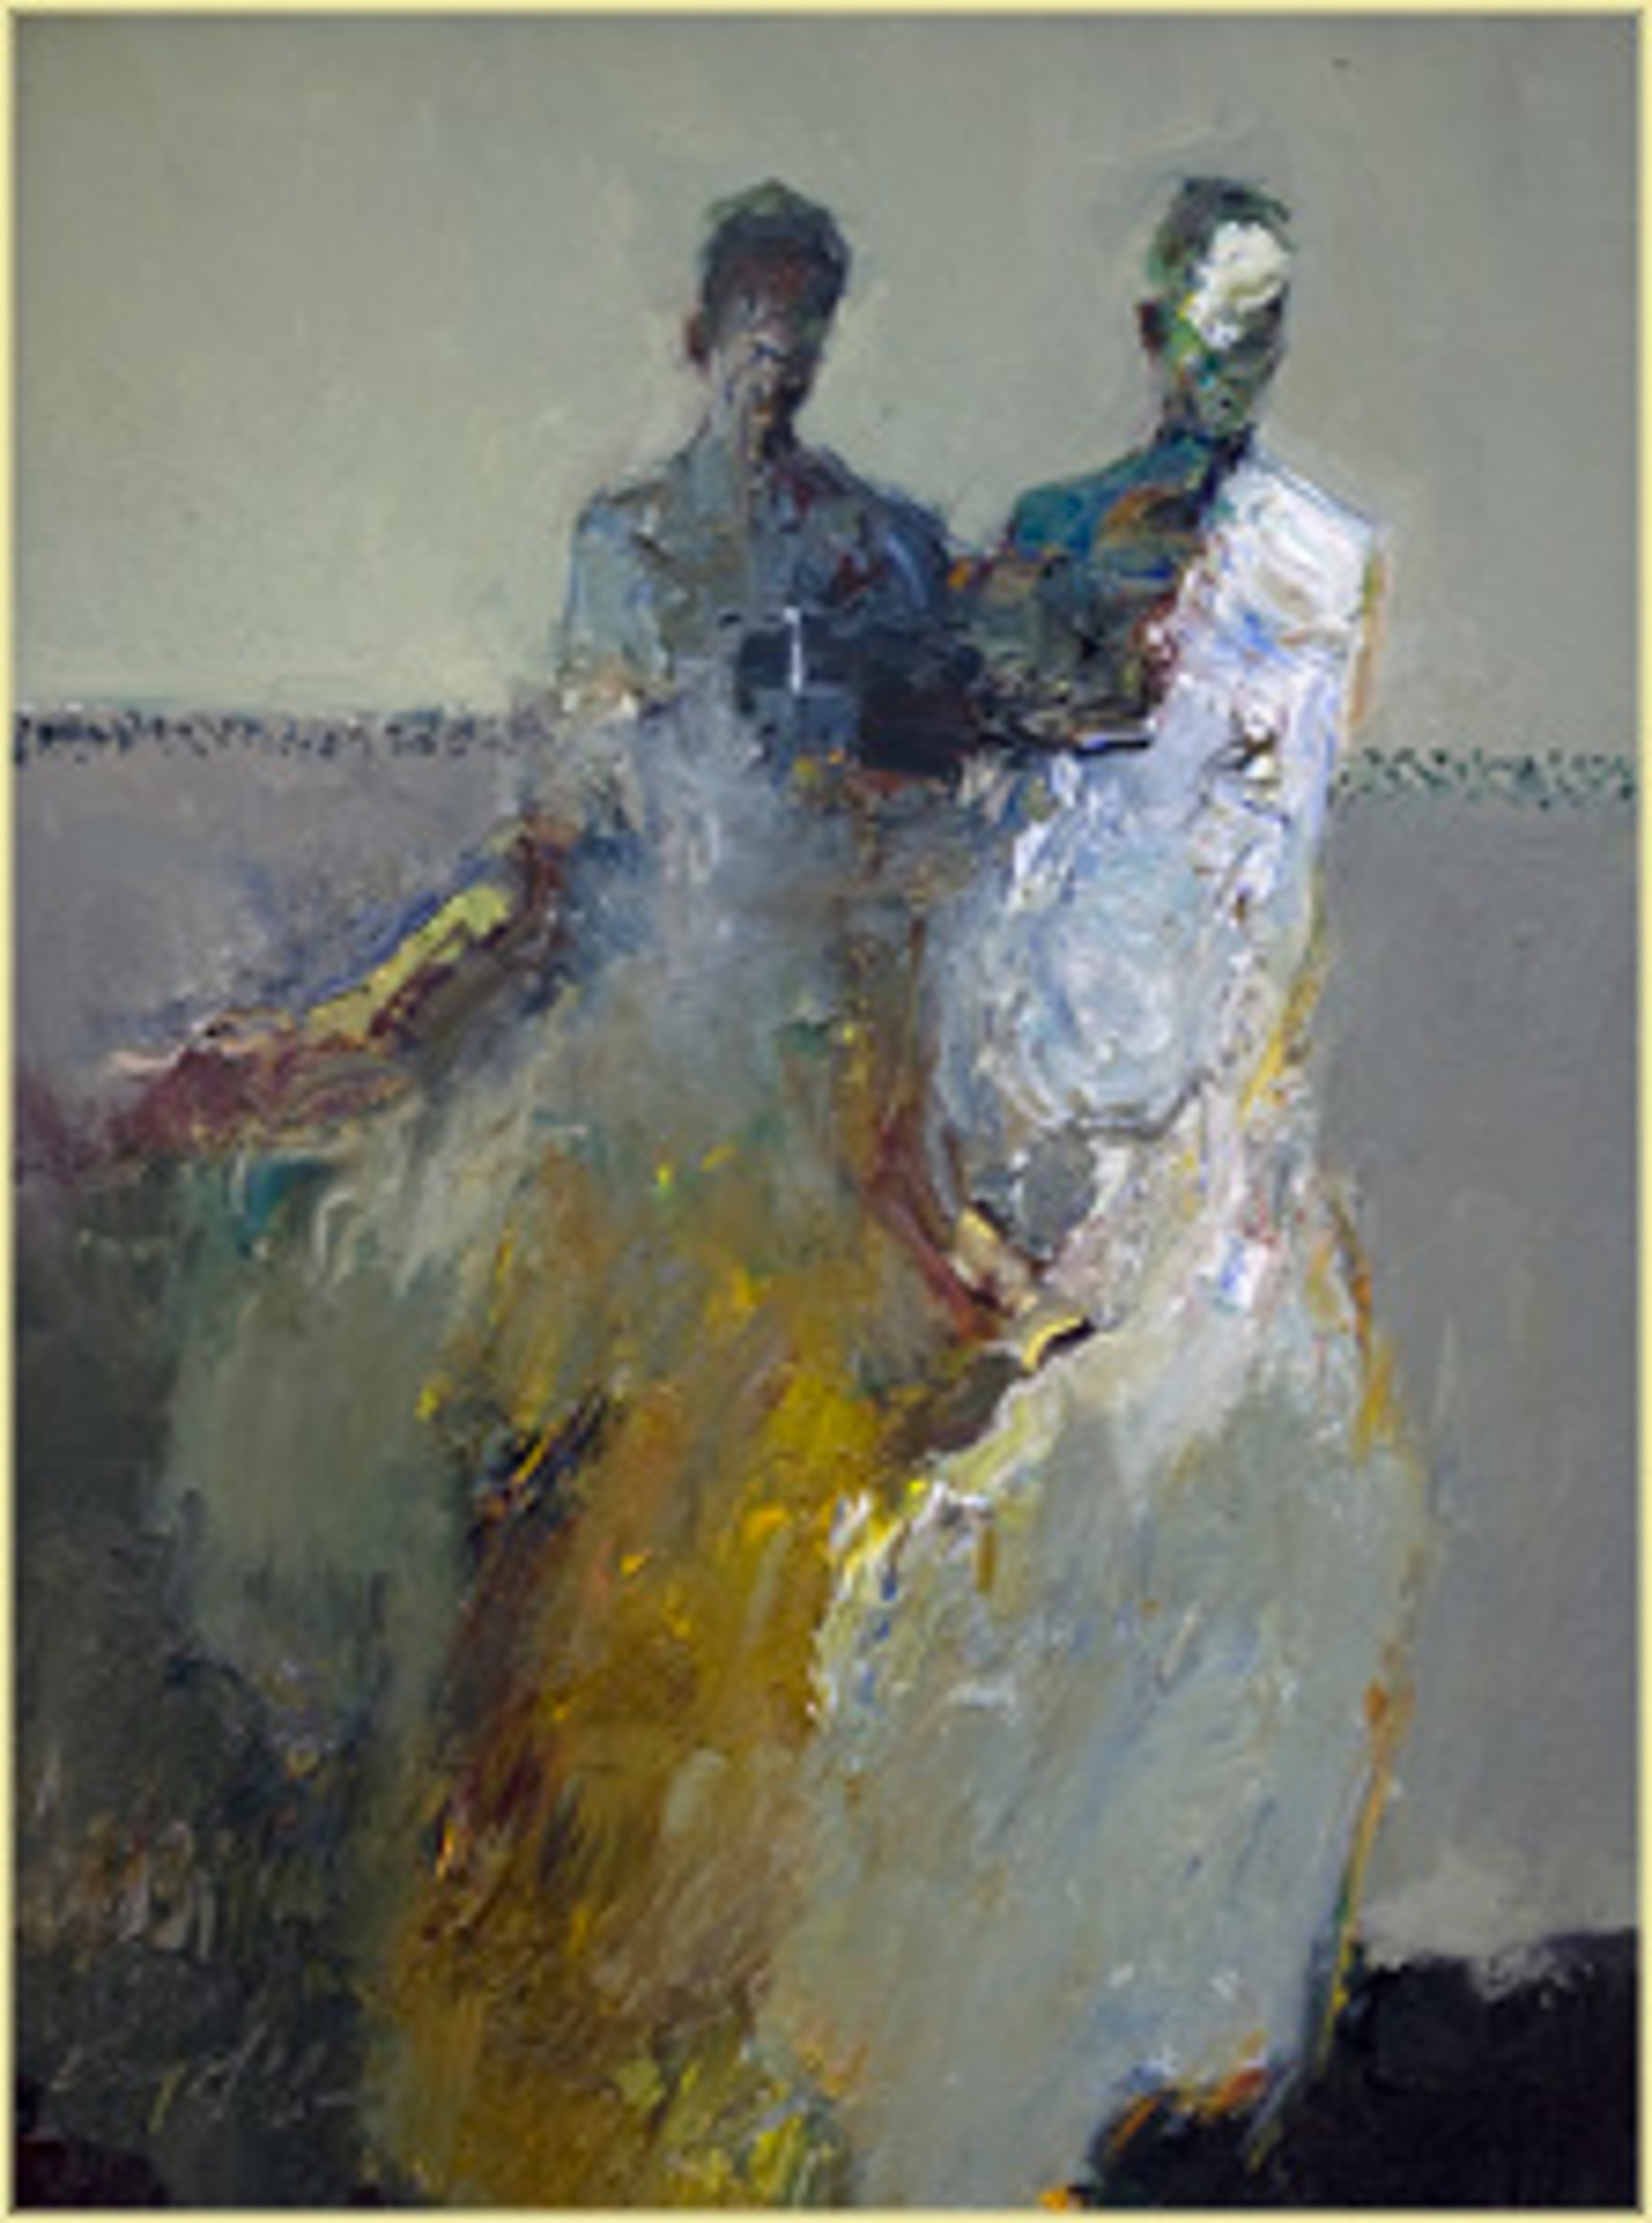 Connected by Danny McCaw